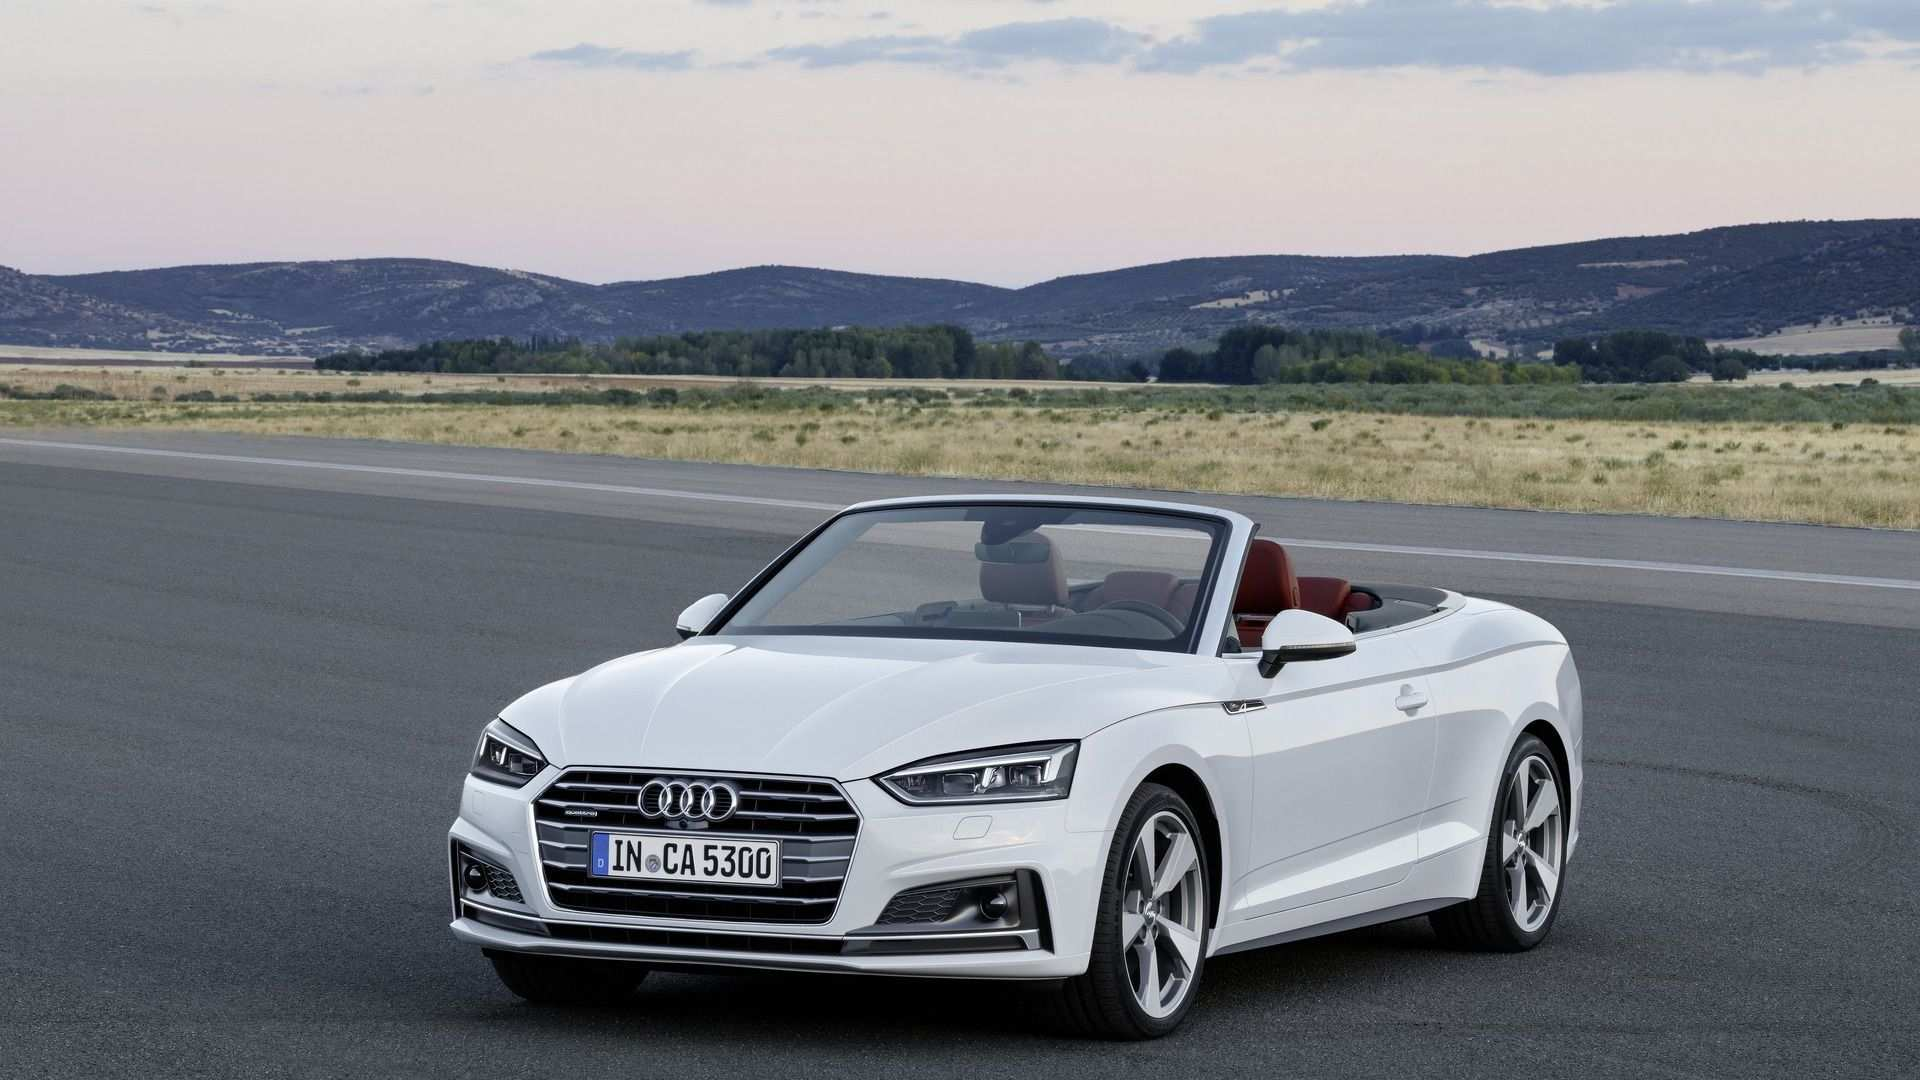 81 The 2020 Audi Rs5 Cabriolet Pictures by 2020 Audi Rs5 Cabriolet